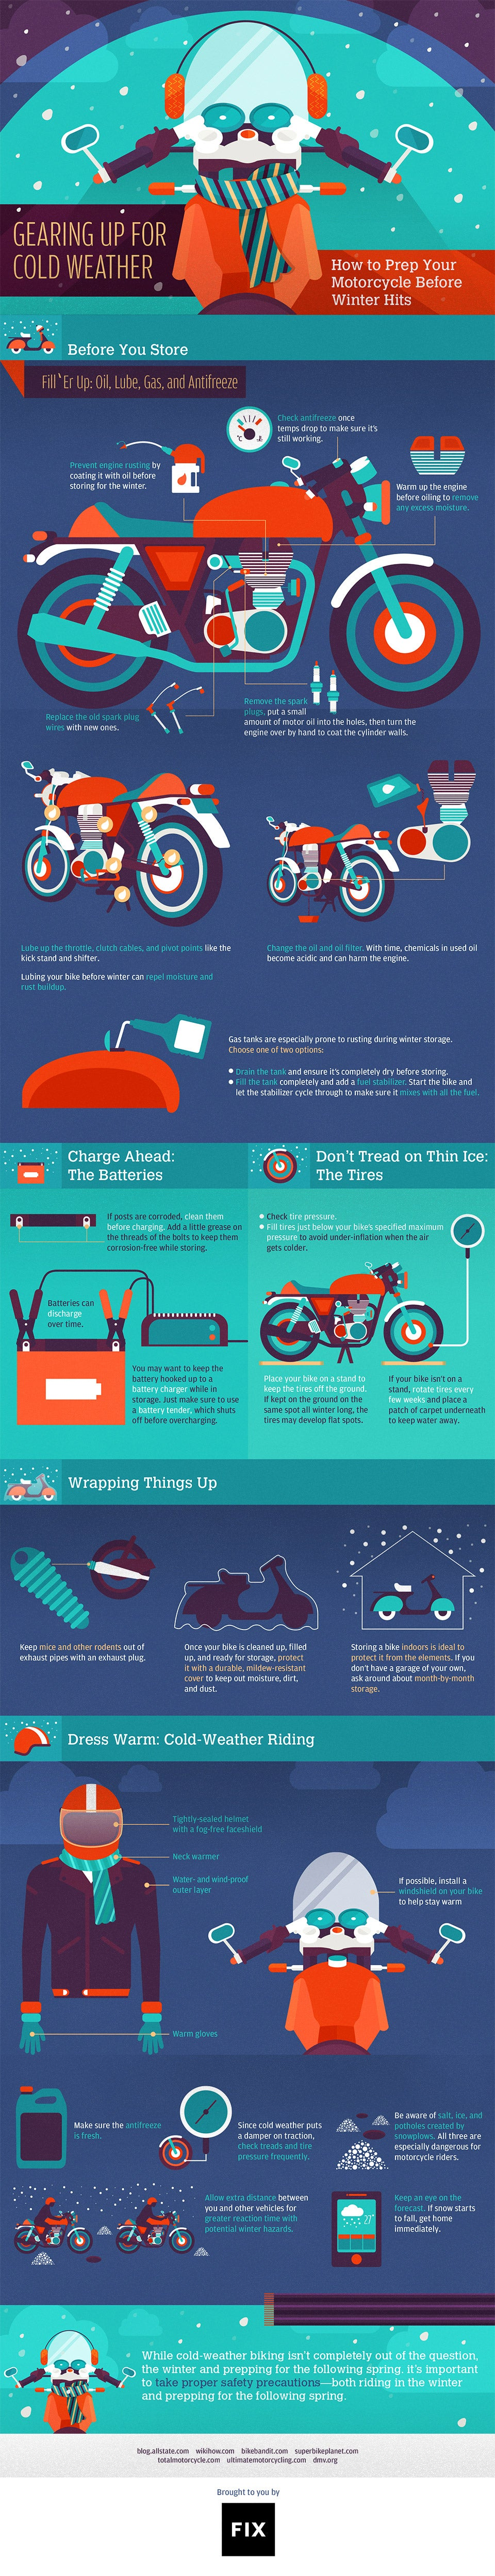 Prepare Your Motorcycle for Winter with Help from This Graphic